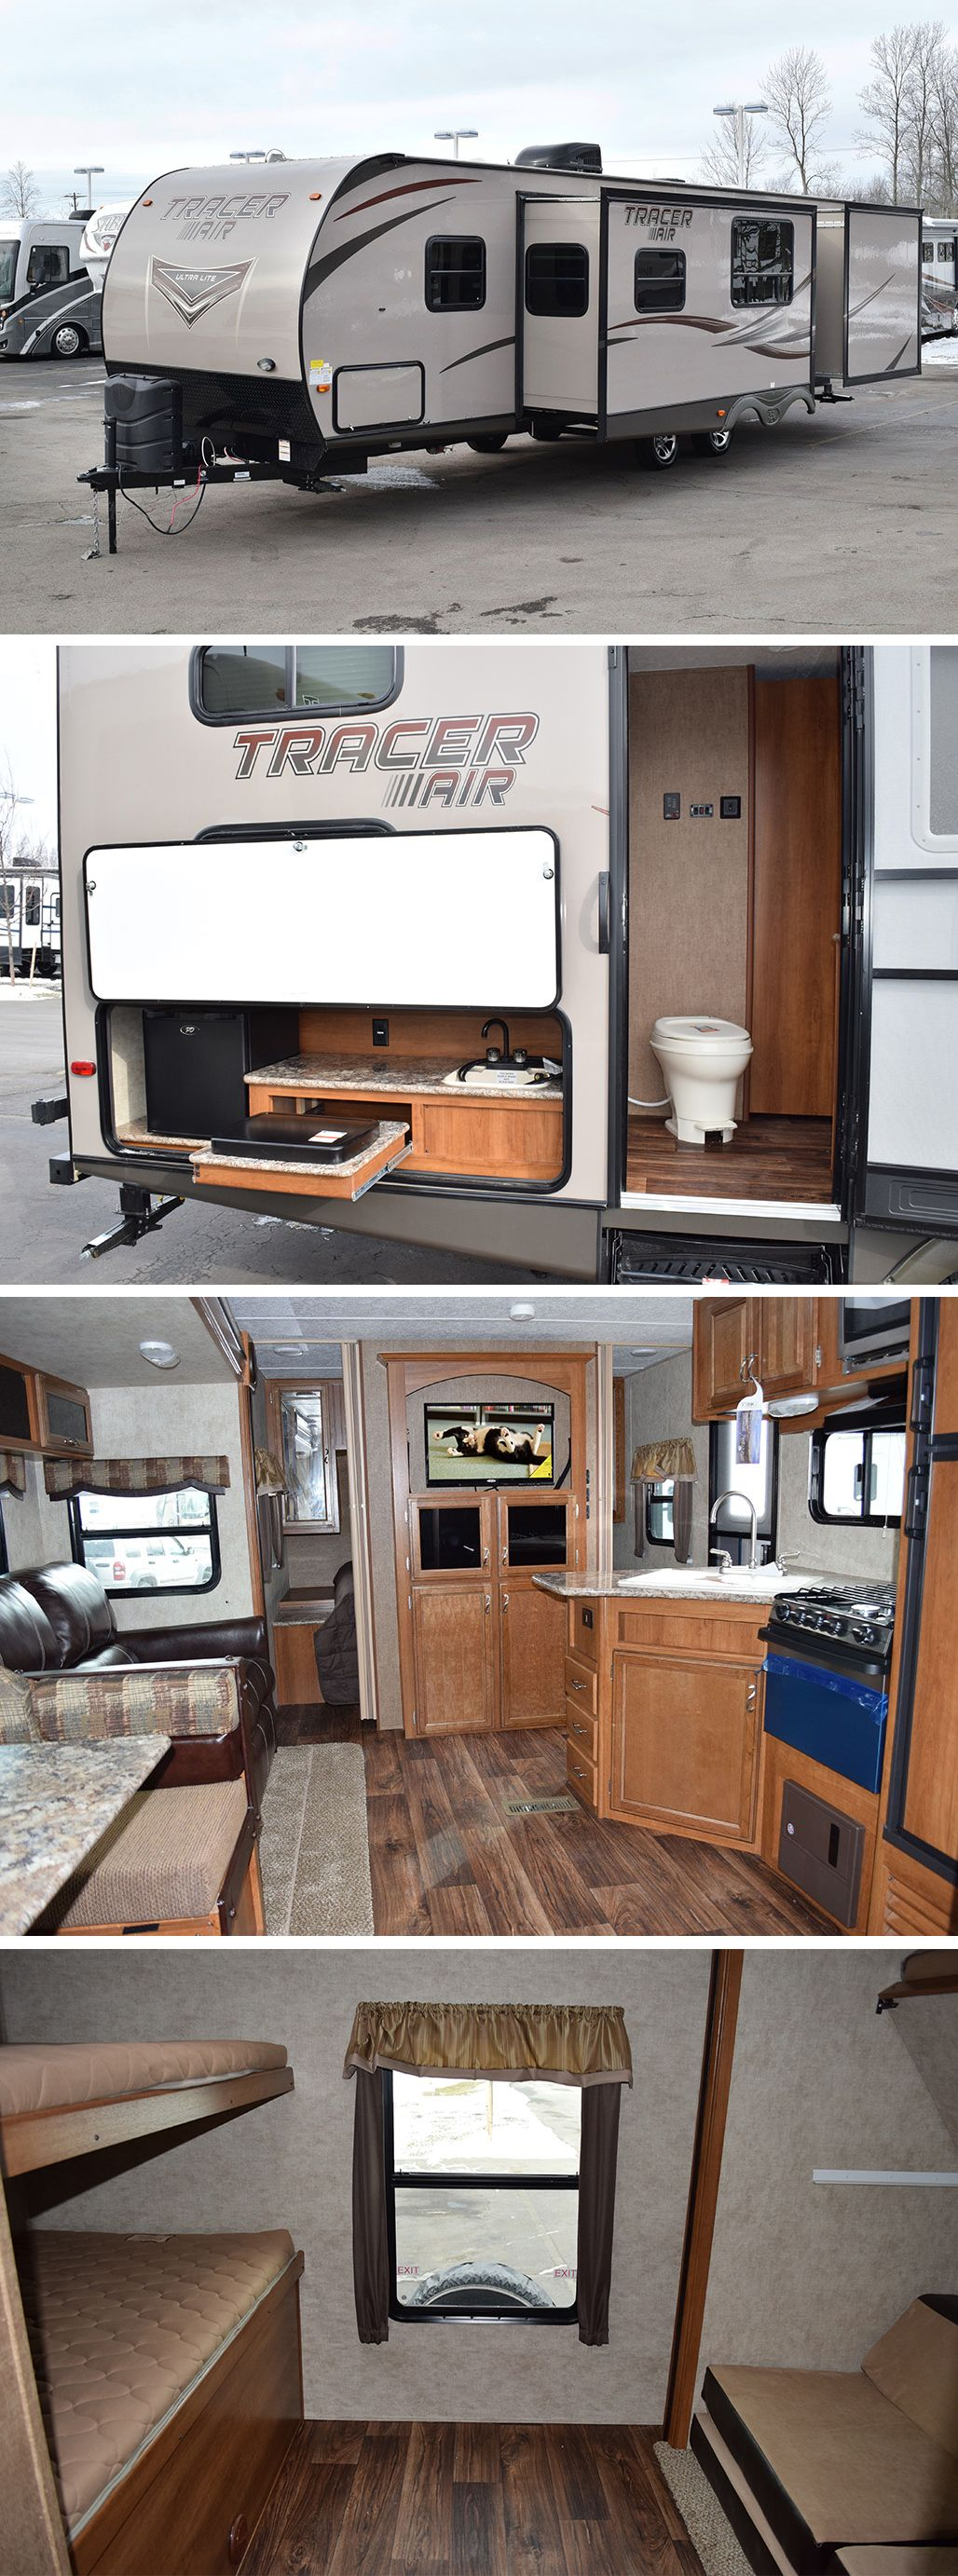 2015 Prime Time Tracer SWT1256 Toy hauler travel